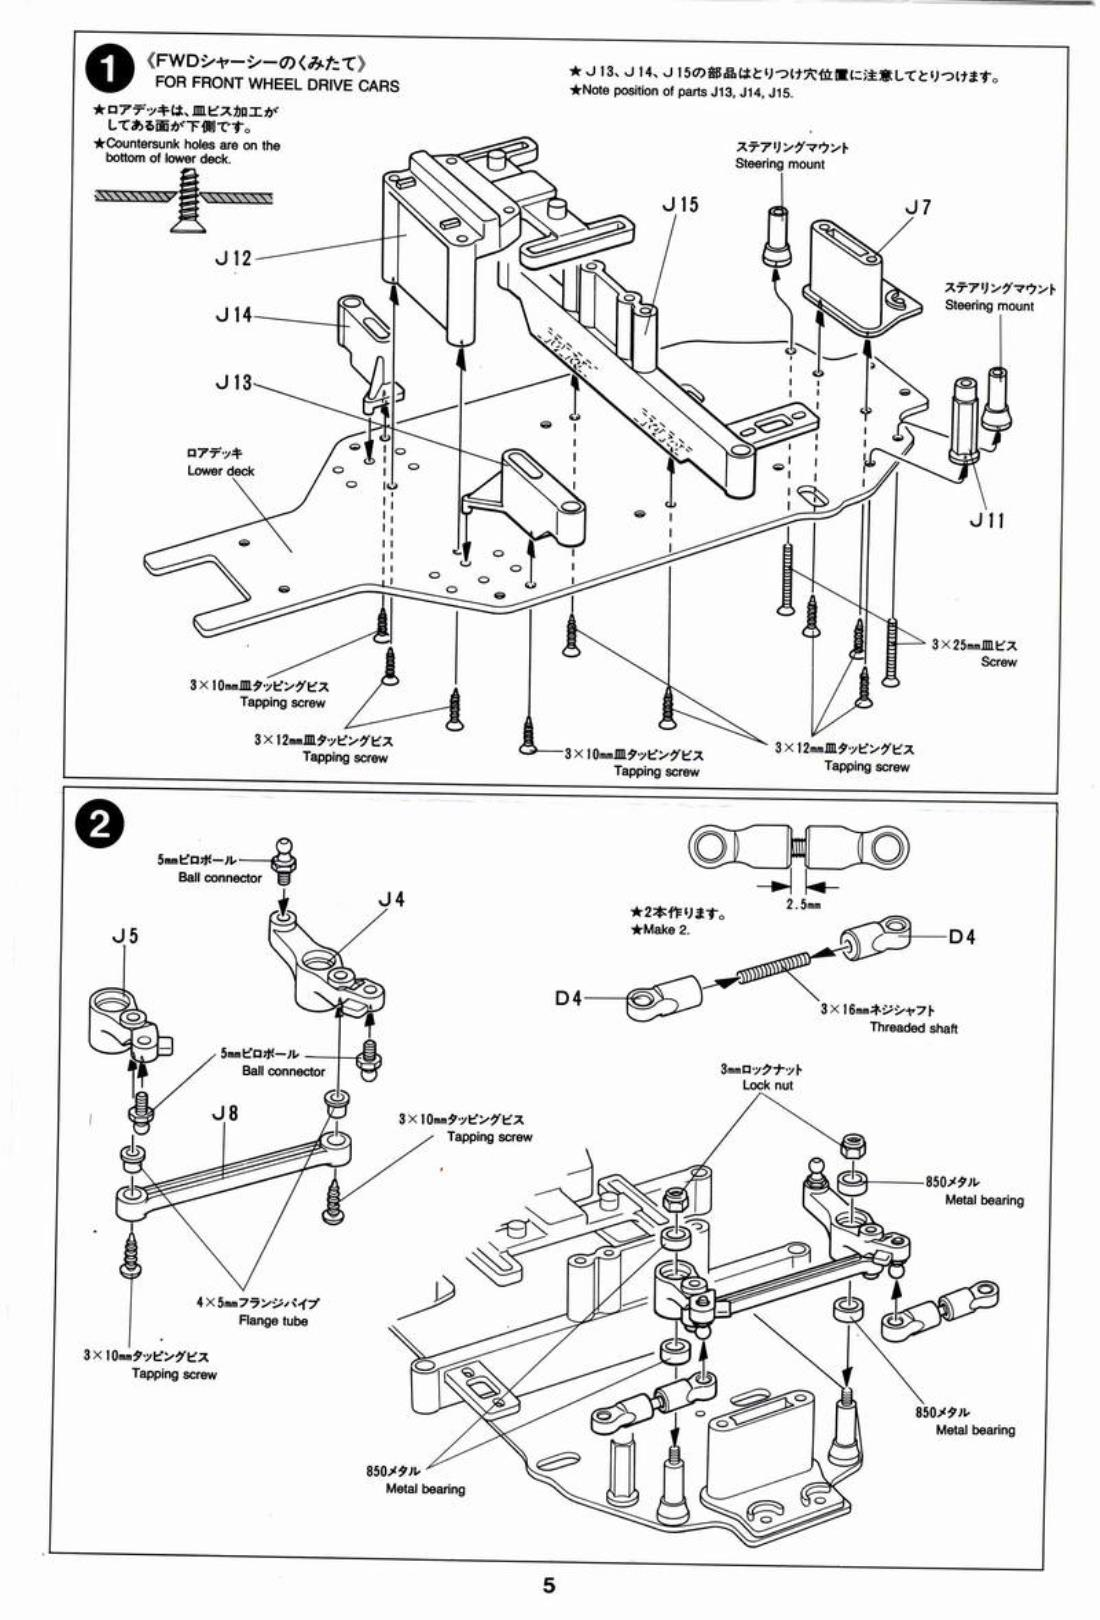 hight resolution of  instructions for ff01 fwd chassis